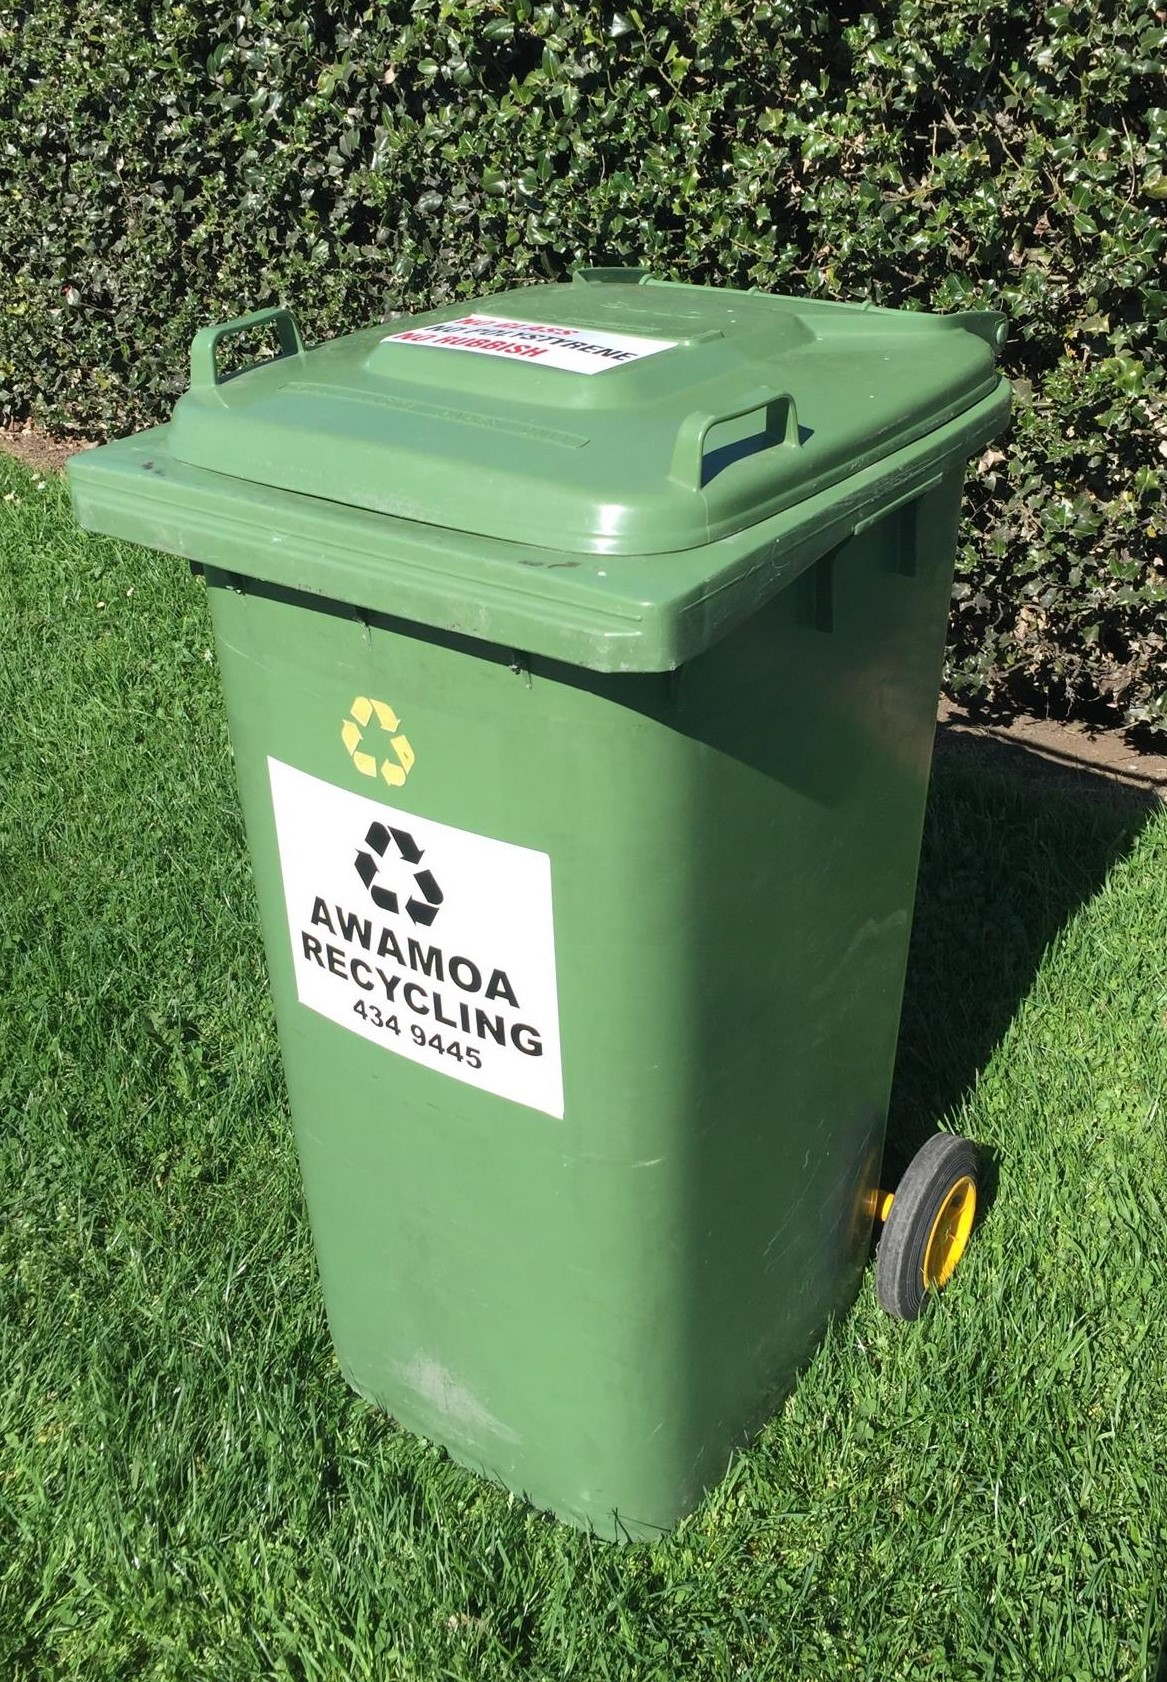 RECYCLING - Large recycle (240 litre) or Small recycle (120 litre)For all clean recyclables except glass and polystyrene.Accepted: tins, cans, plastics, newspapers, magazines, cardboard, paper.Our recycle service is on an on-call basis only in Oamaru, Weston, Kakanui, Maheno, Enfield and Windsor.Recycling is collected on a Wednesday in Oamaru and Weston.Last Friday of the month in Kakanui and Maheno..Last Friday of the month Enfield and Windsor.Please ensure you call us before 5pm Tuesday to request your collection.